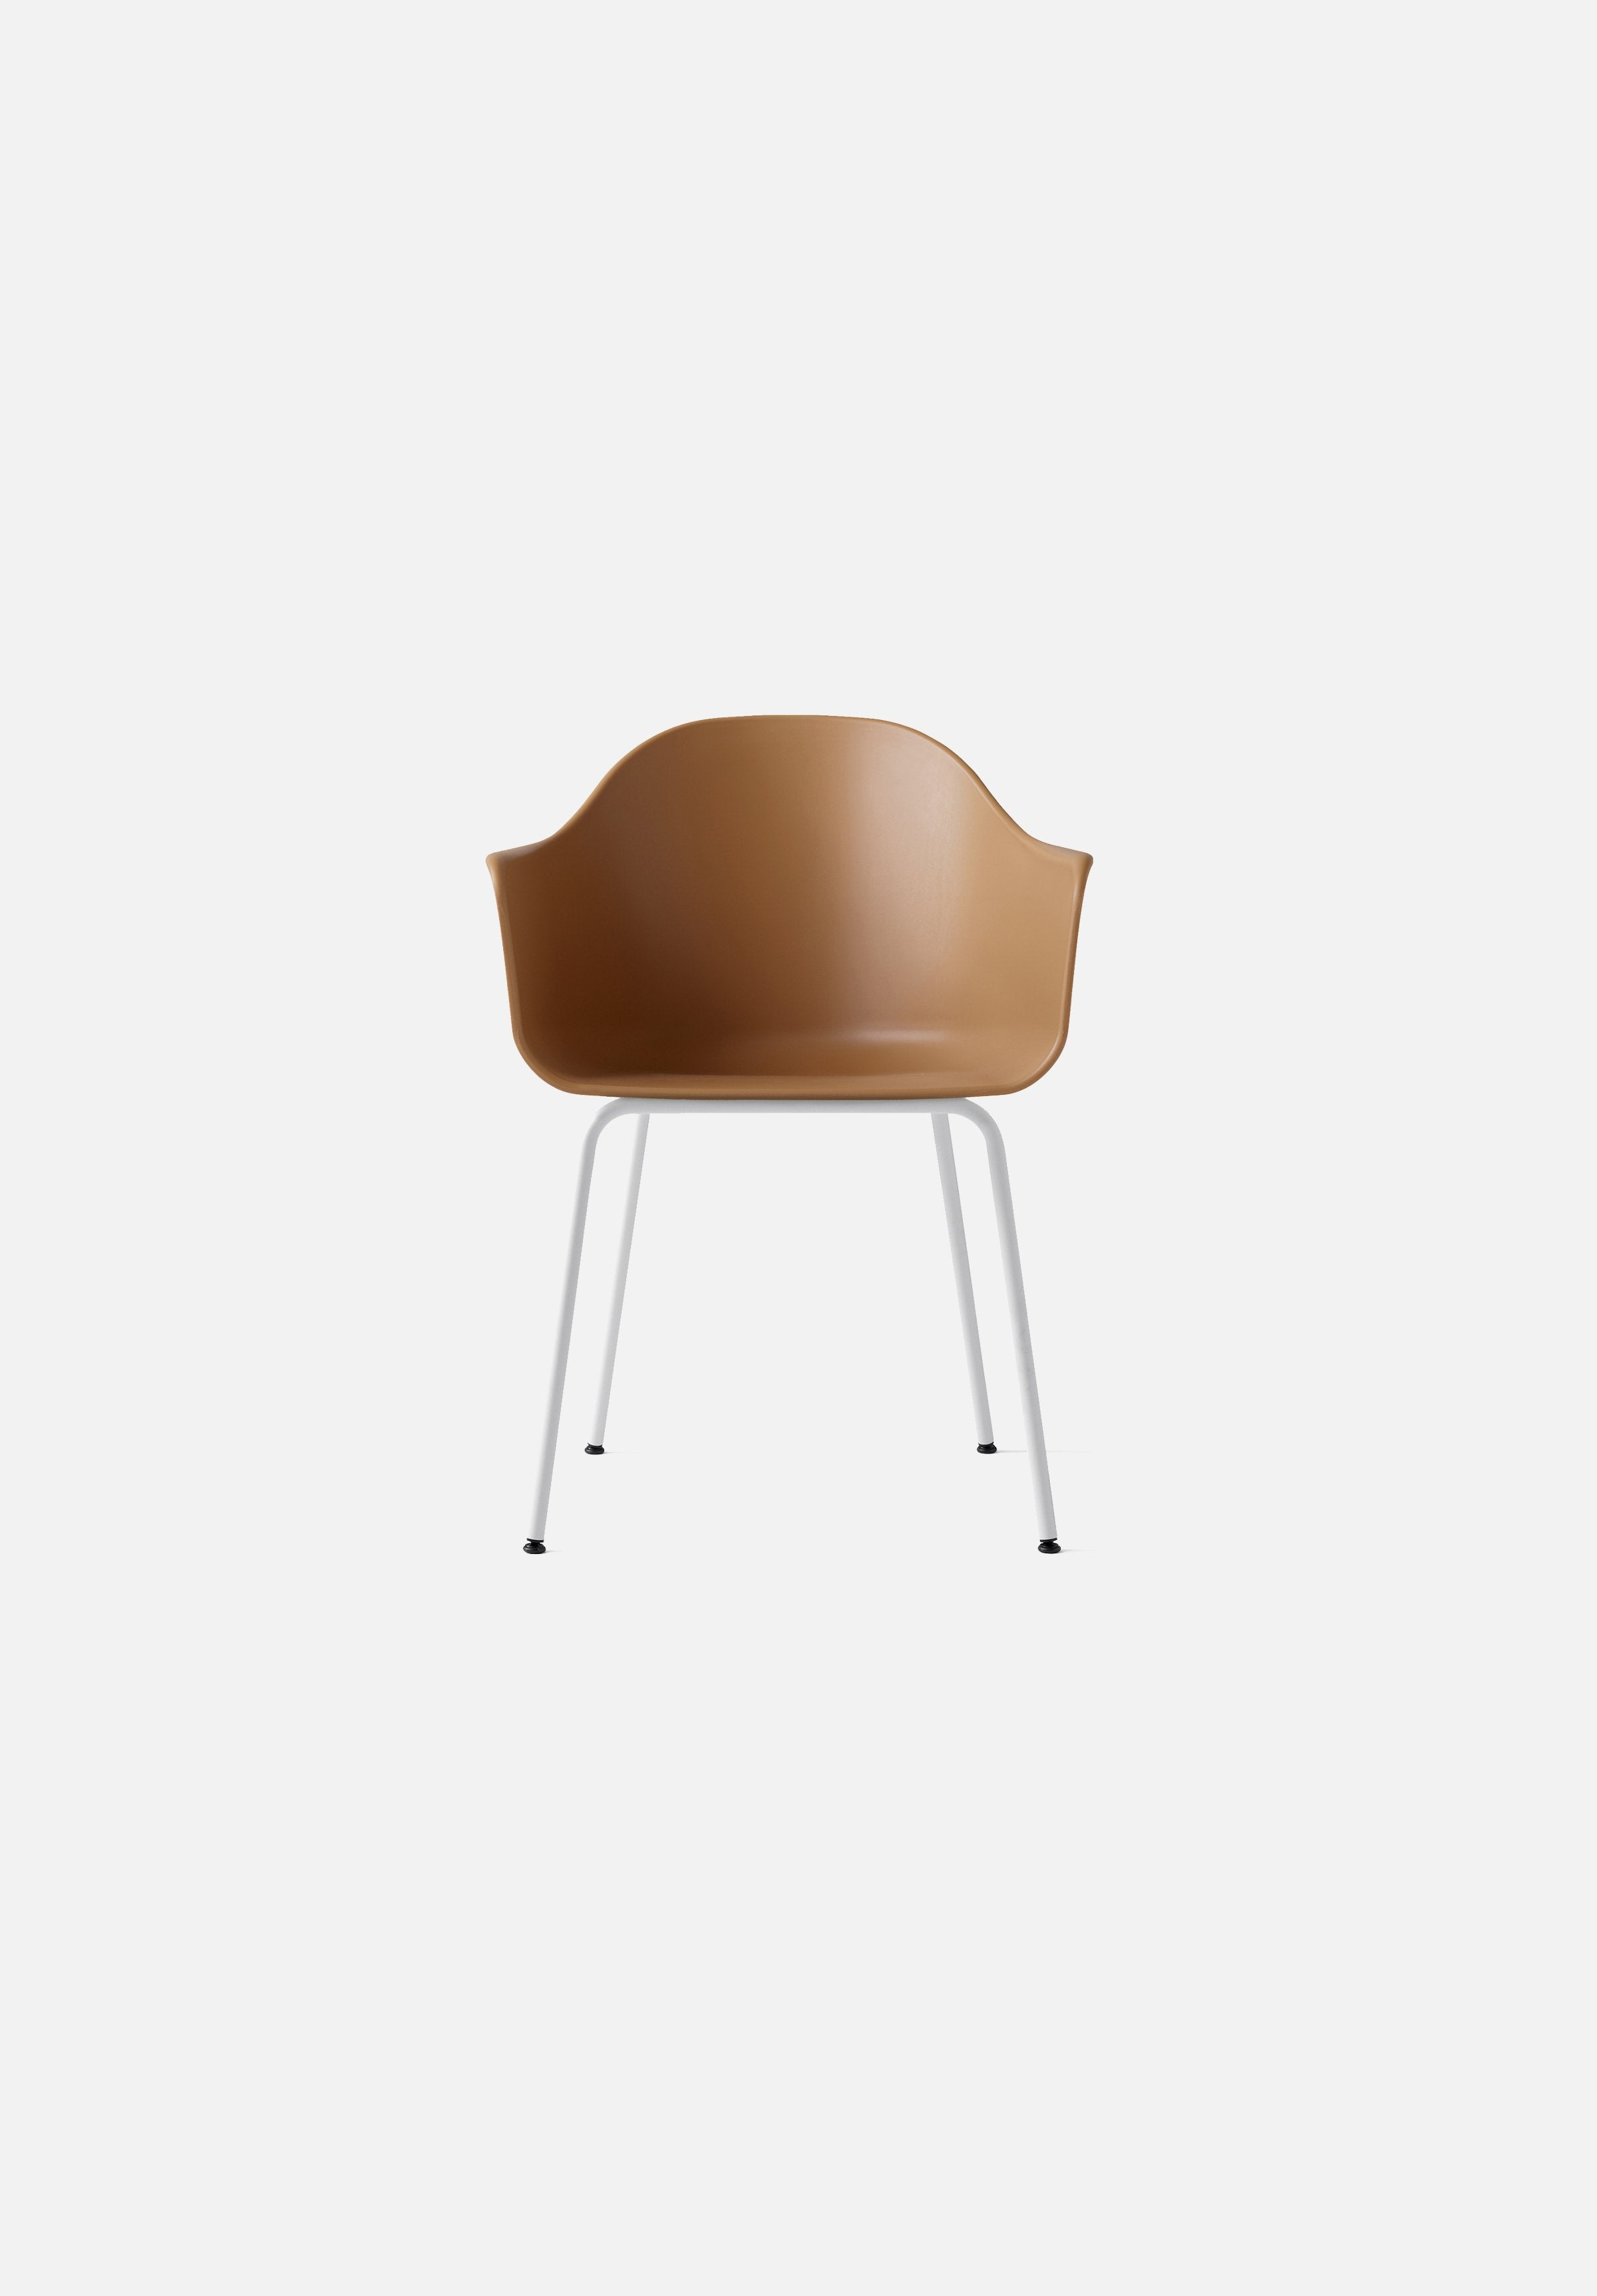 Harbour Chair - Steel Base-Norm Architects-Menu-khaki-White Steel-danish-interior-furniture-denmark-Average-design-toronto-canada